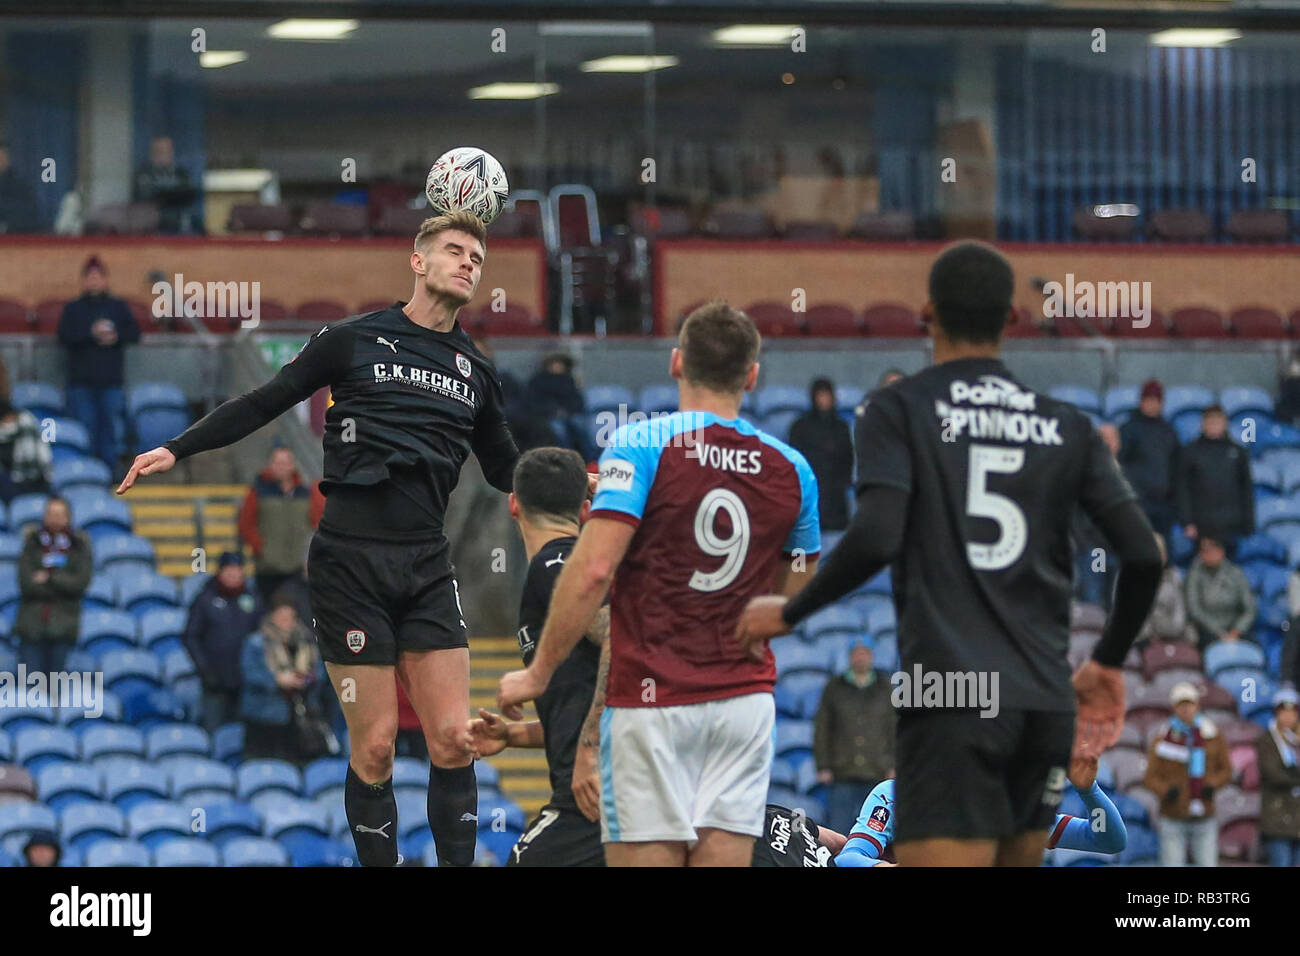 5th January 2019, Turf Moor, Burnley, England ; The Emirates FA Cup, 3rd Round, Burnley vs Barnsley : Liam Lindsay (06) of Barnsley heads the ball clear from a corner   Credit: Mark Cosgrove/News Images  English Football League images are subject to DataCo Licence - Stock Image